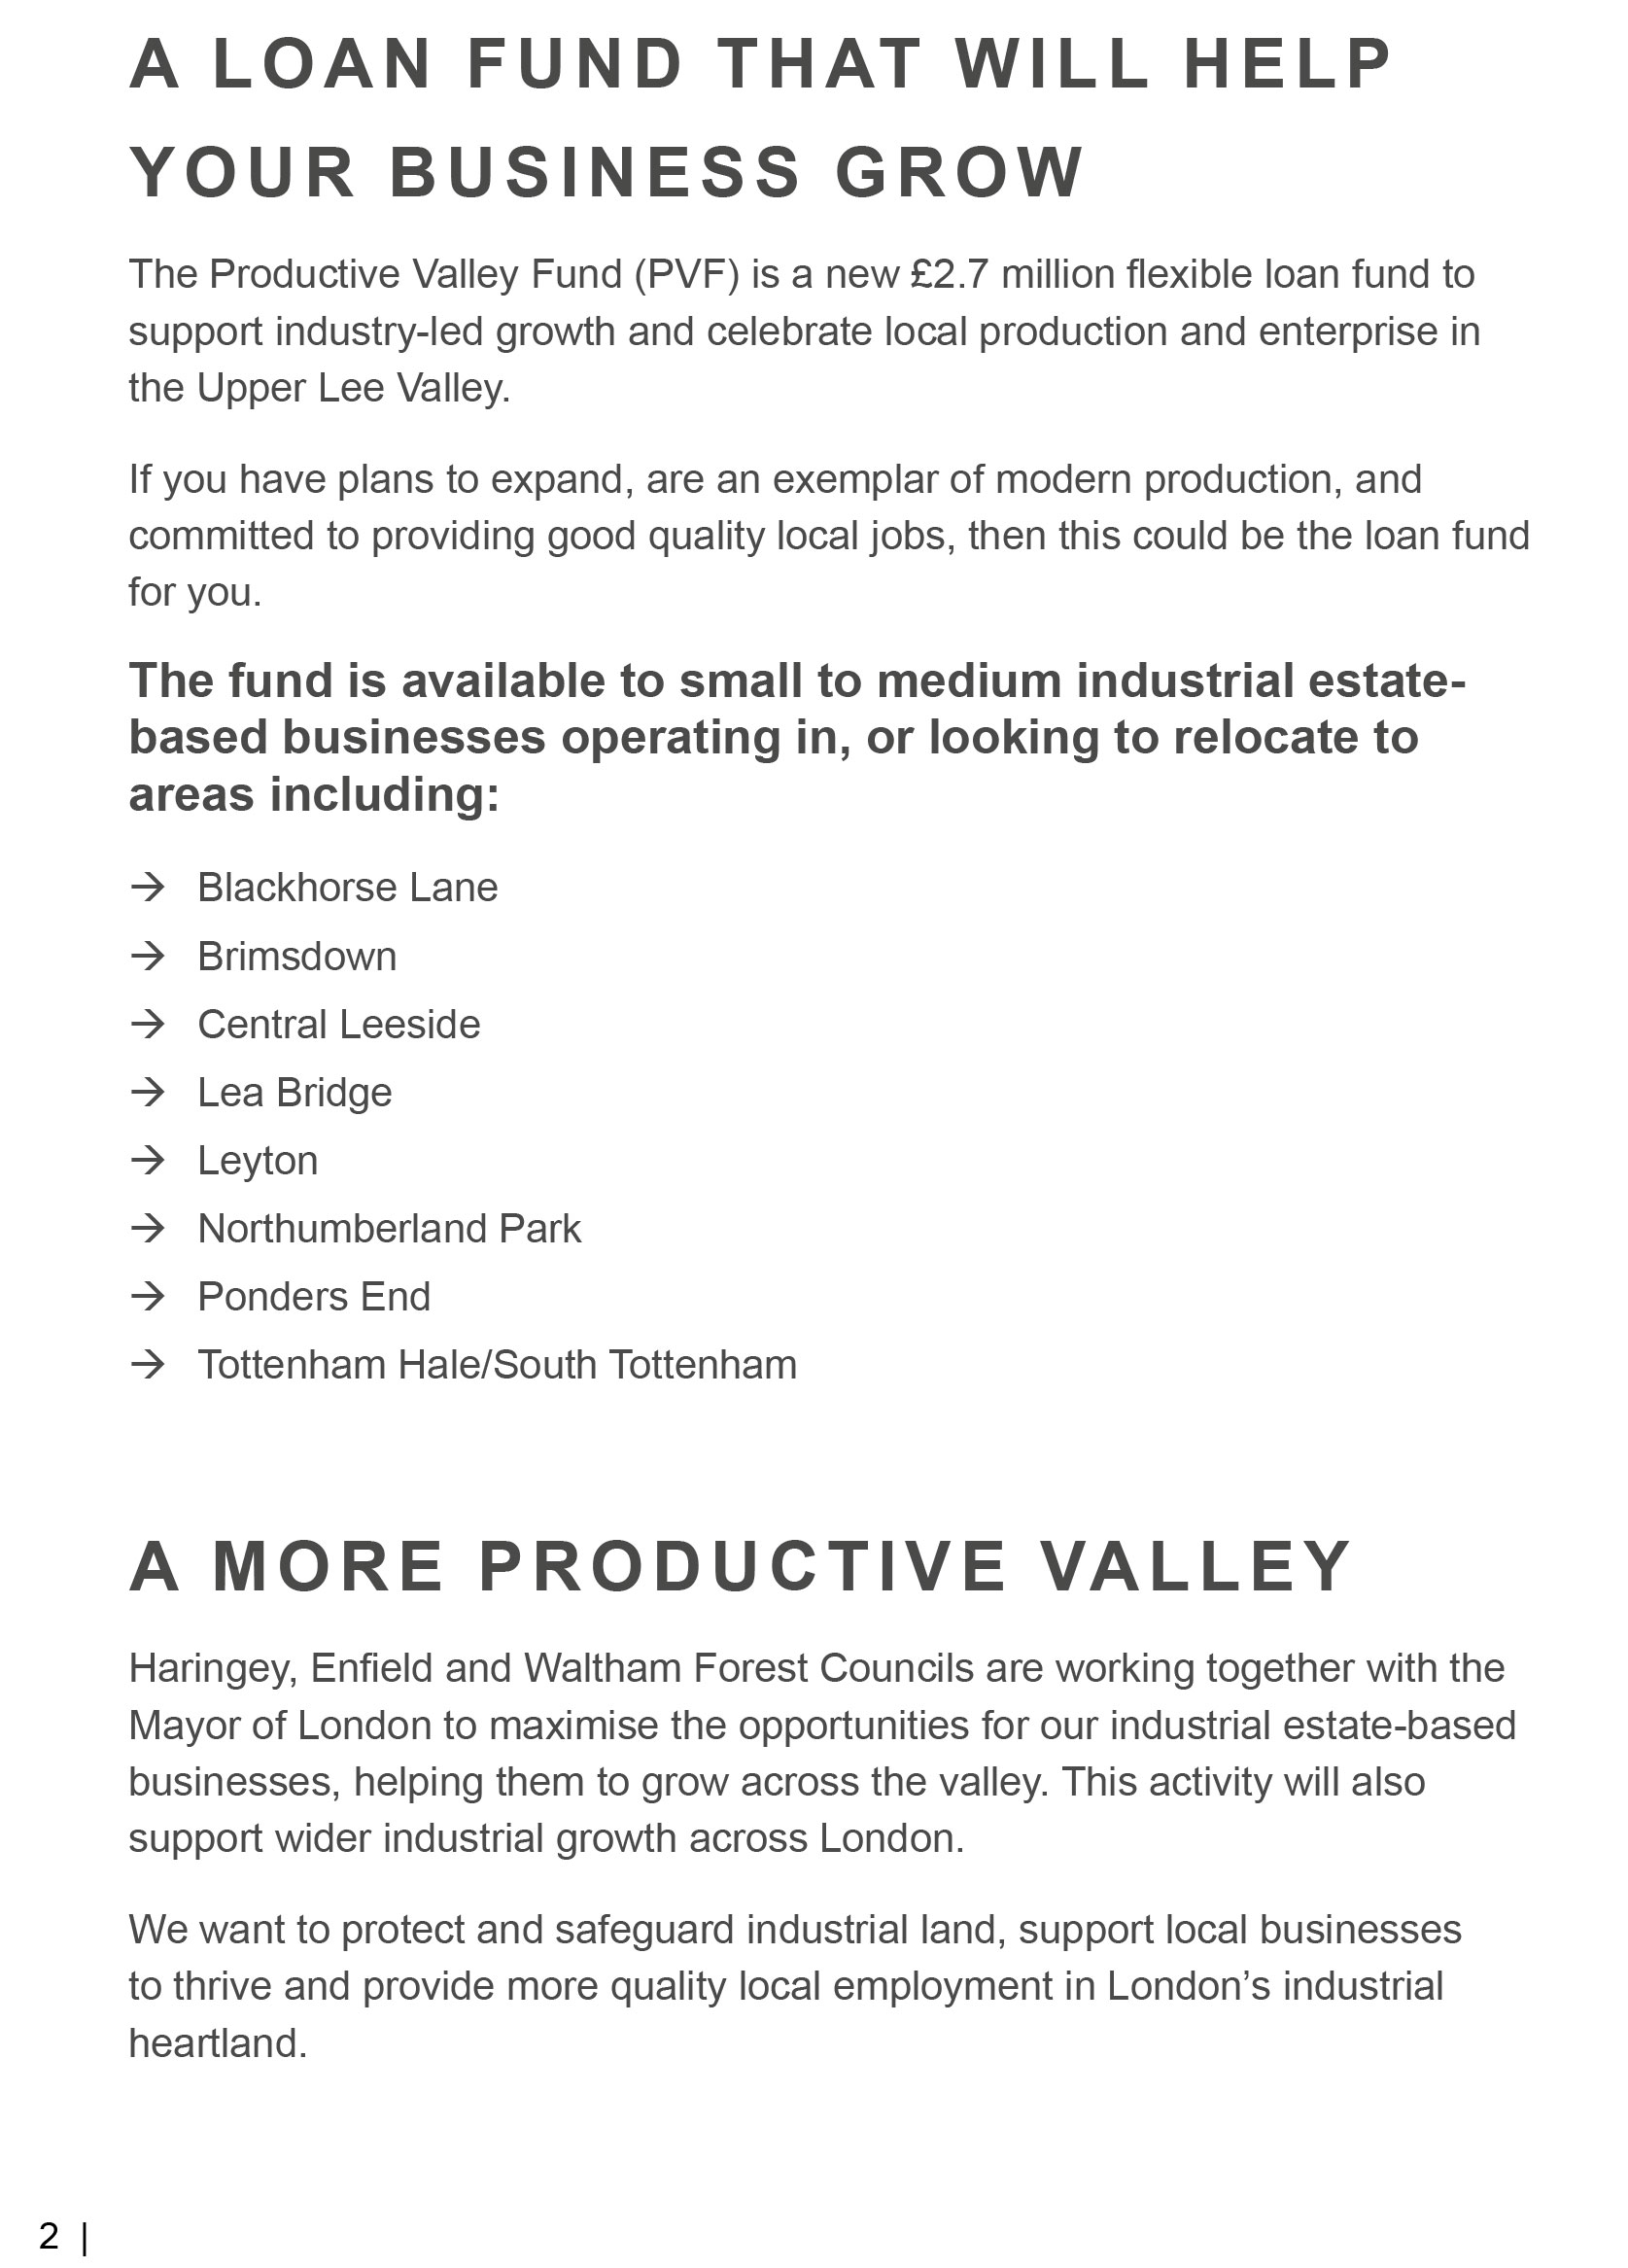 Productive-Valley-Fund-brochure-2